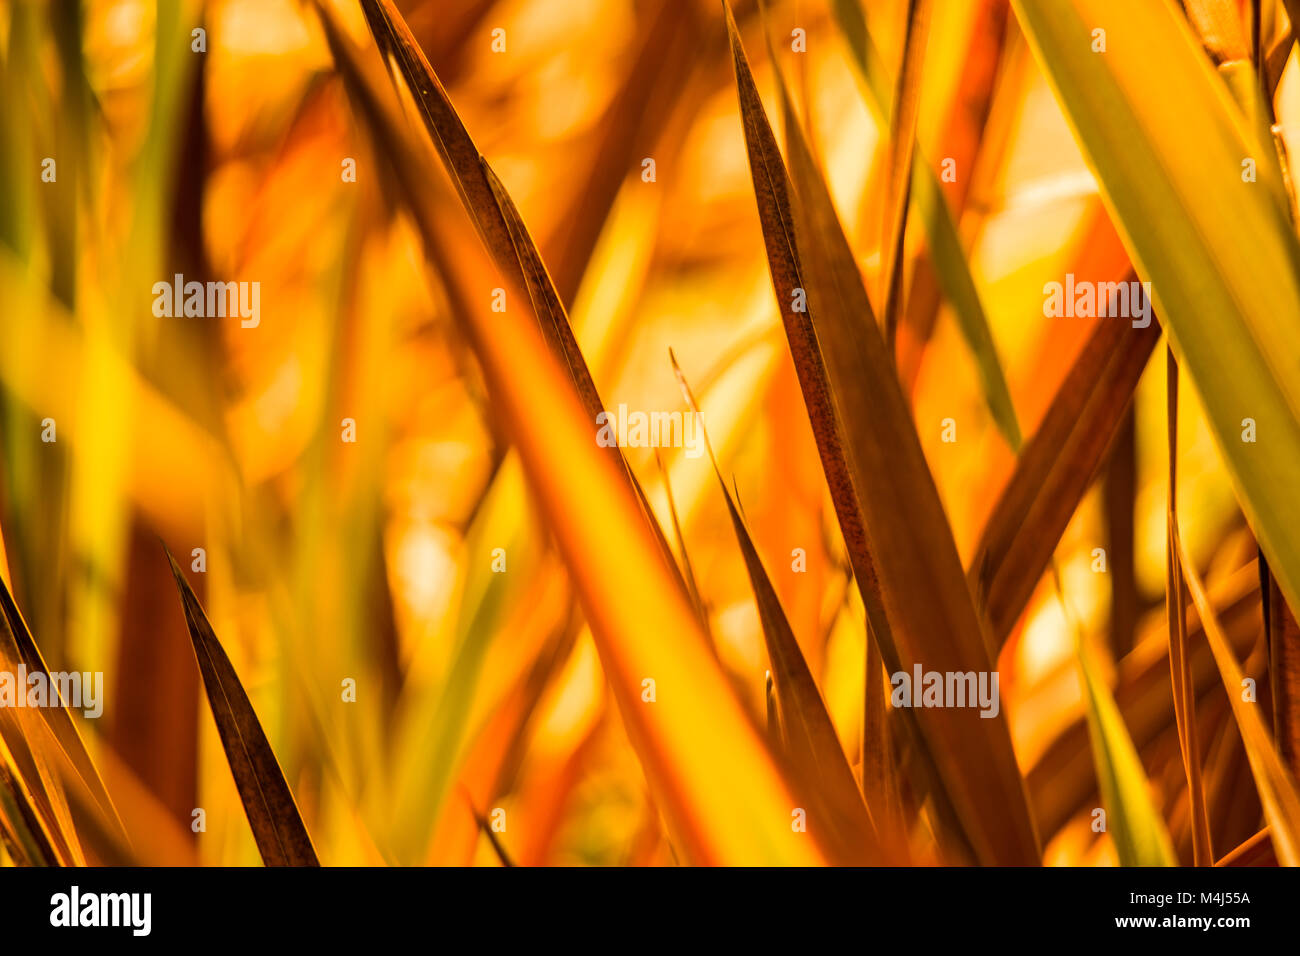 beautiful background of leaves with yellow tones in the autumn sunset - Stock Image